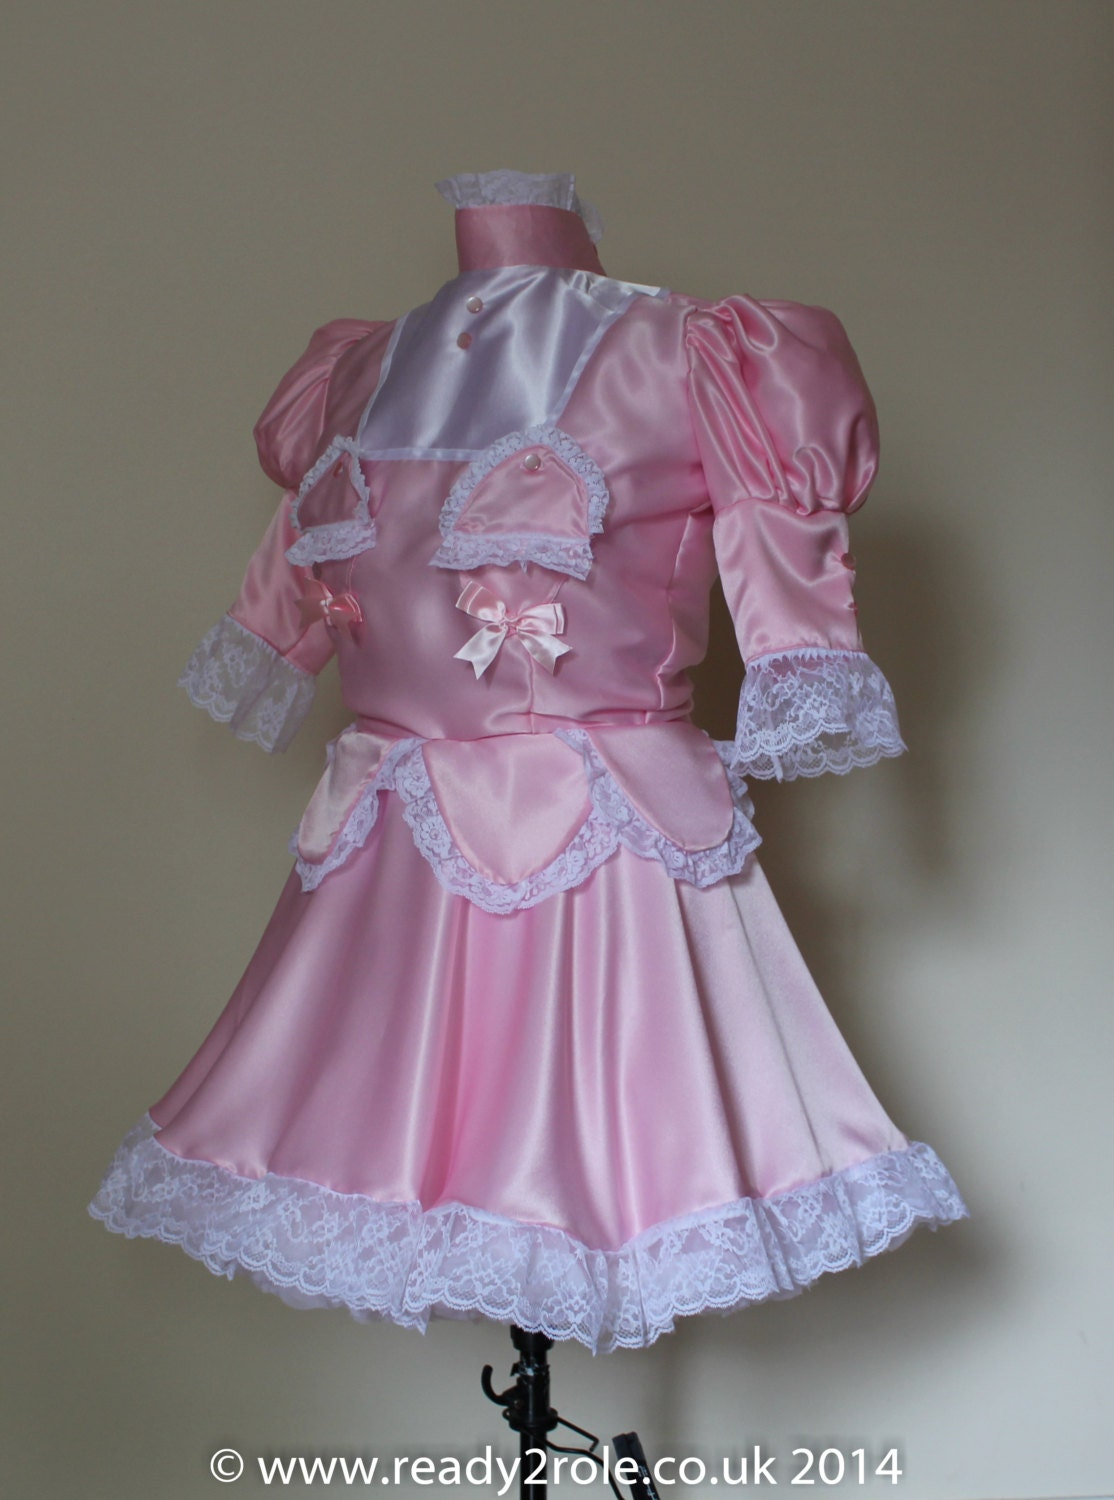 Sissy Dress The Petal Lockable Sissy Dress with by ready2role